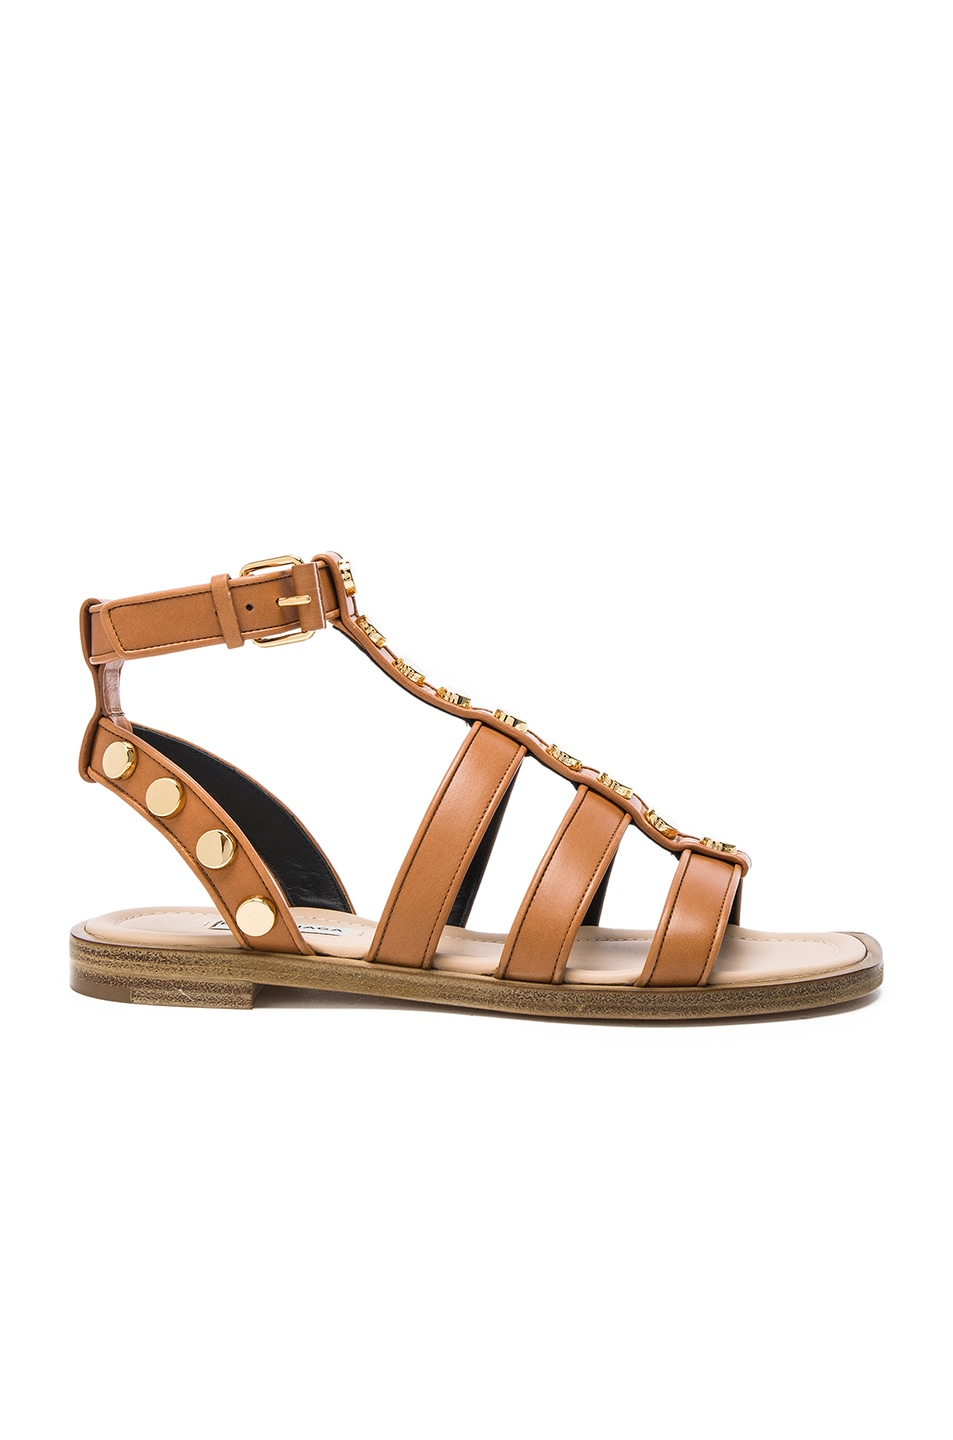 Image 1 of Balenciaga Studded Leather Gladiator Sandals in Cognac